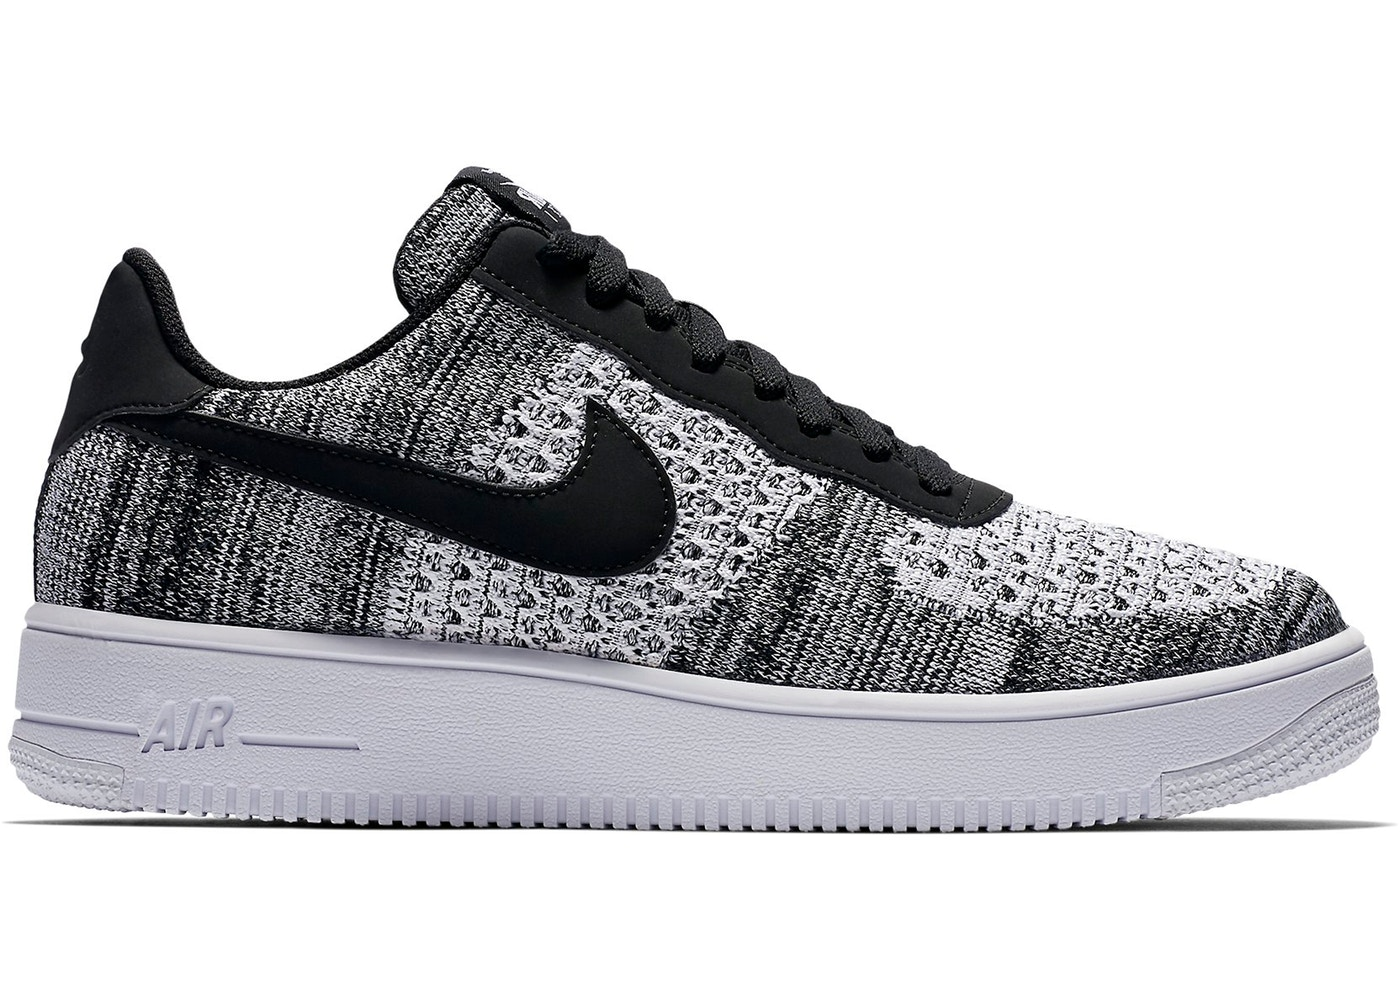 promo code d12d8 e2599 Buy Nike Air Force Shoes   Deadstock Sneakers